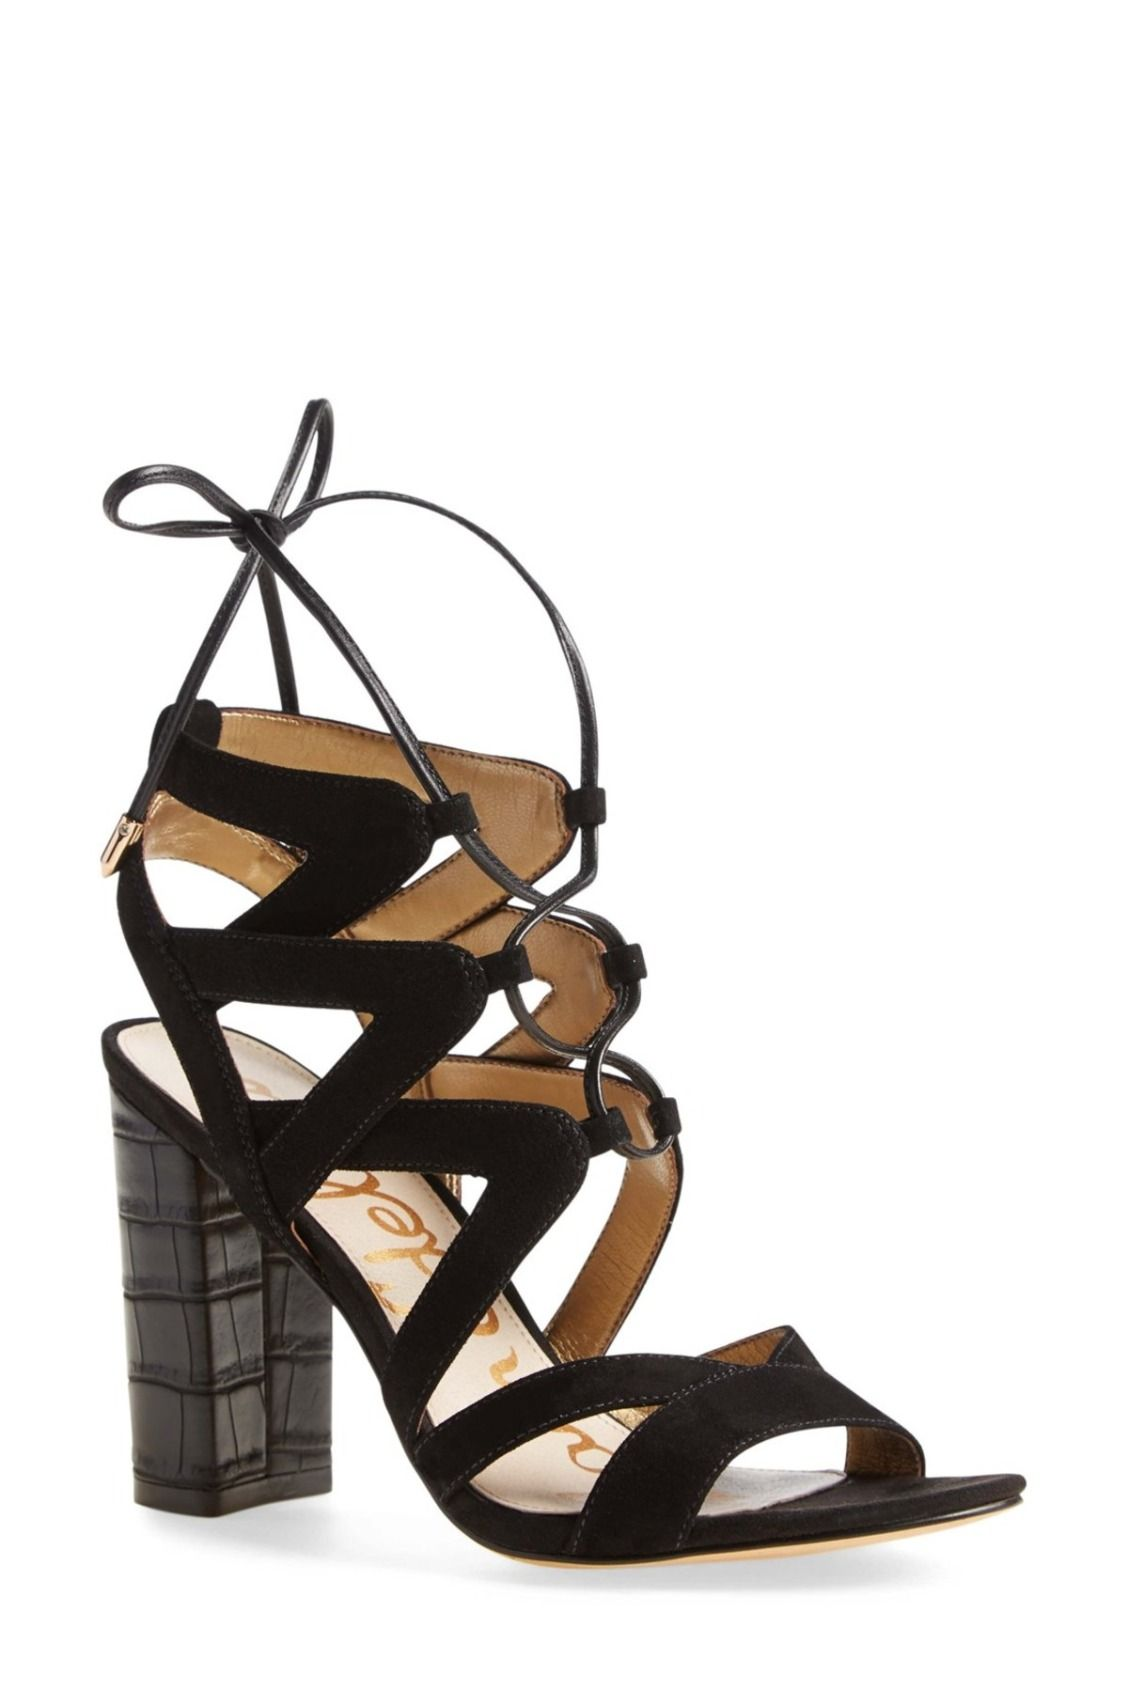 c054f175a How amazing are these Sam Edelman Yardley Lace-Up Suede Sandals ...